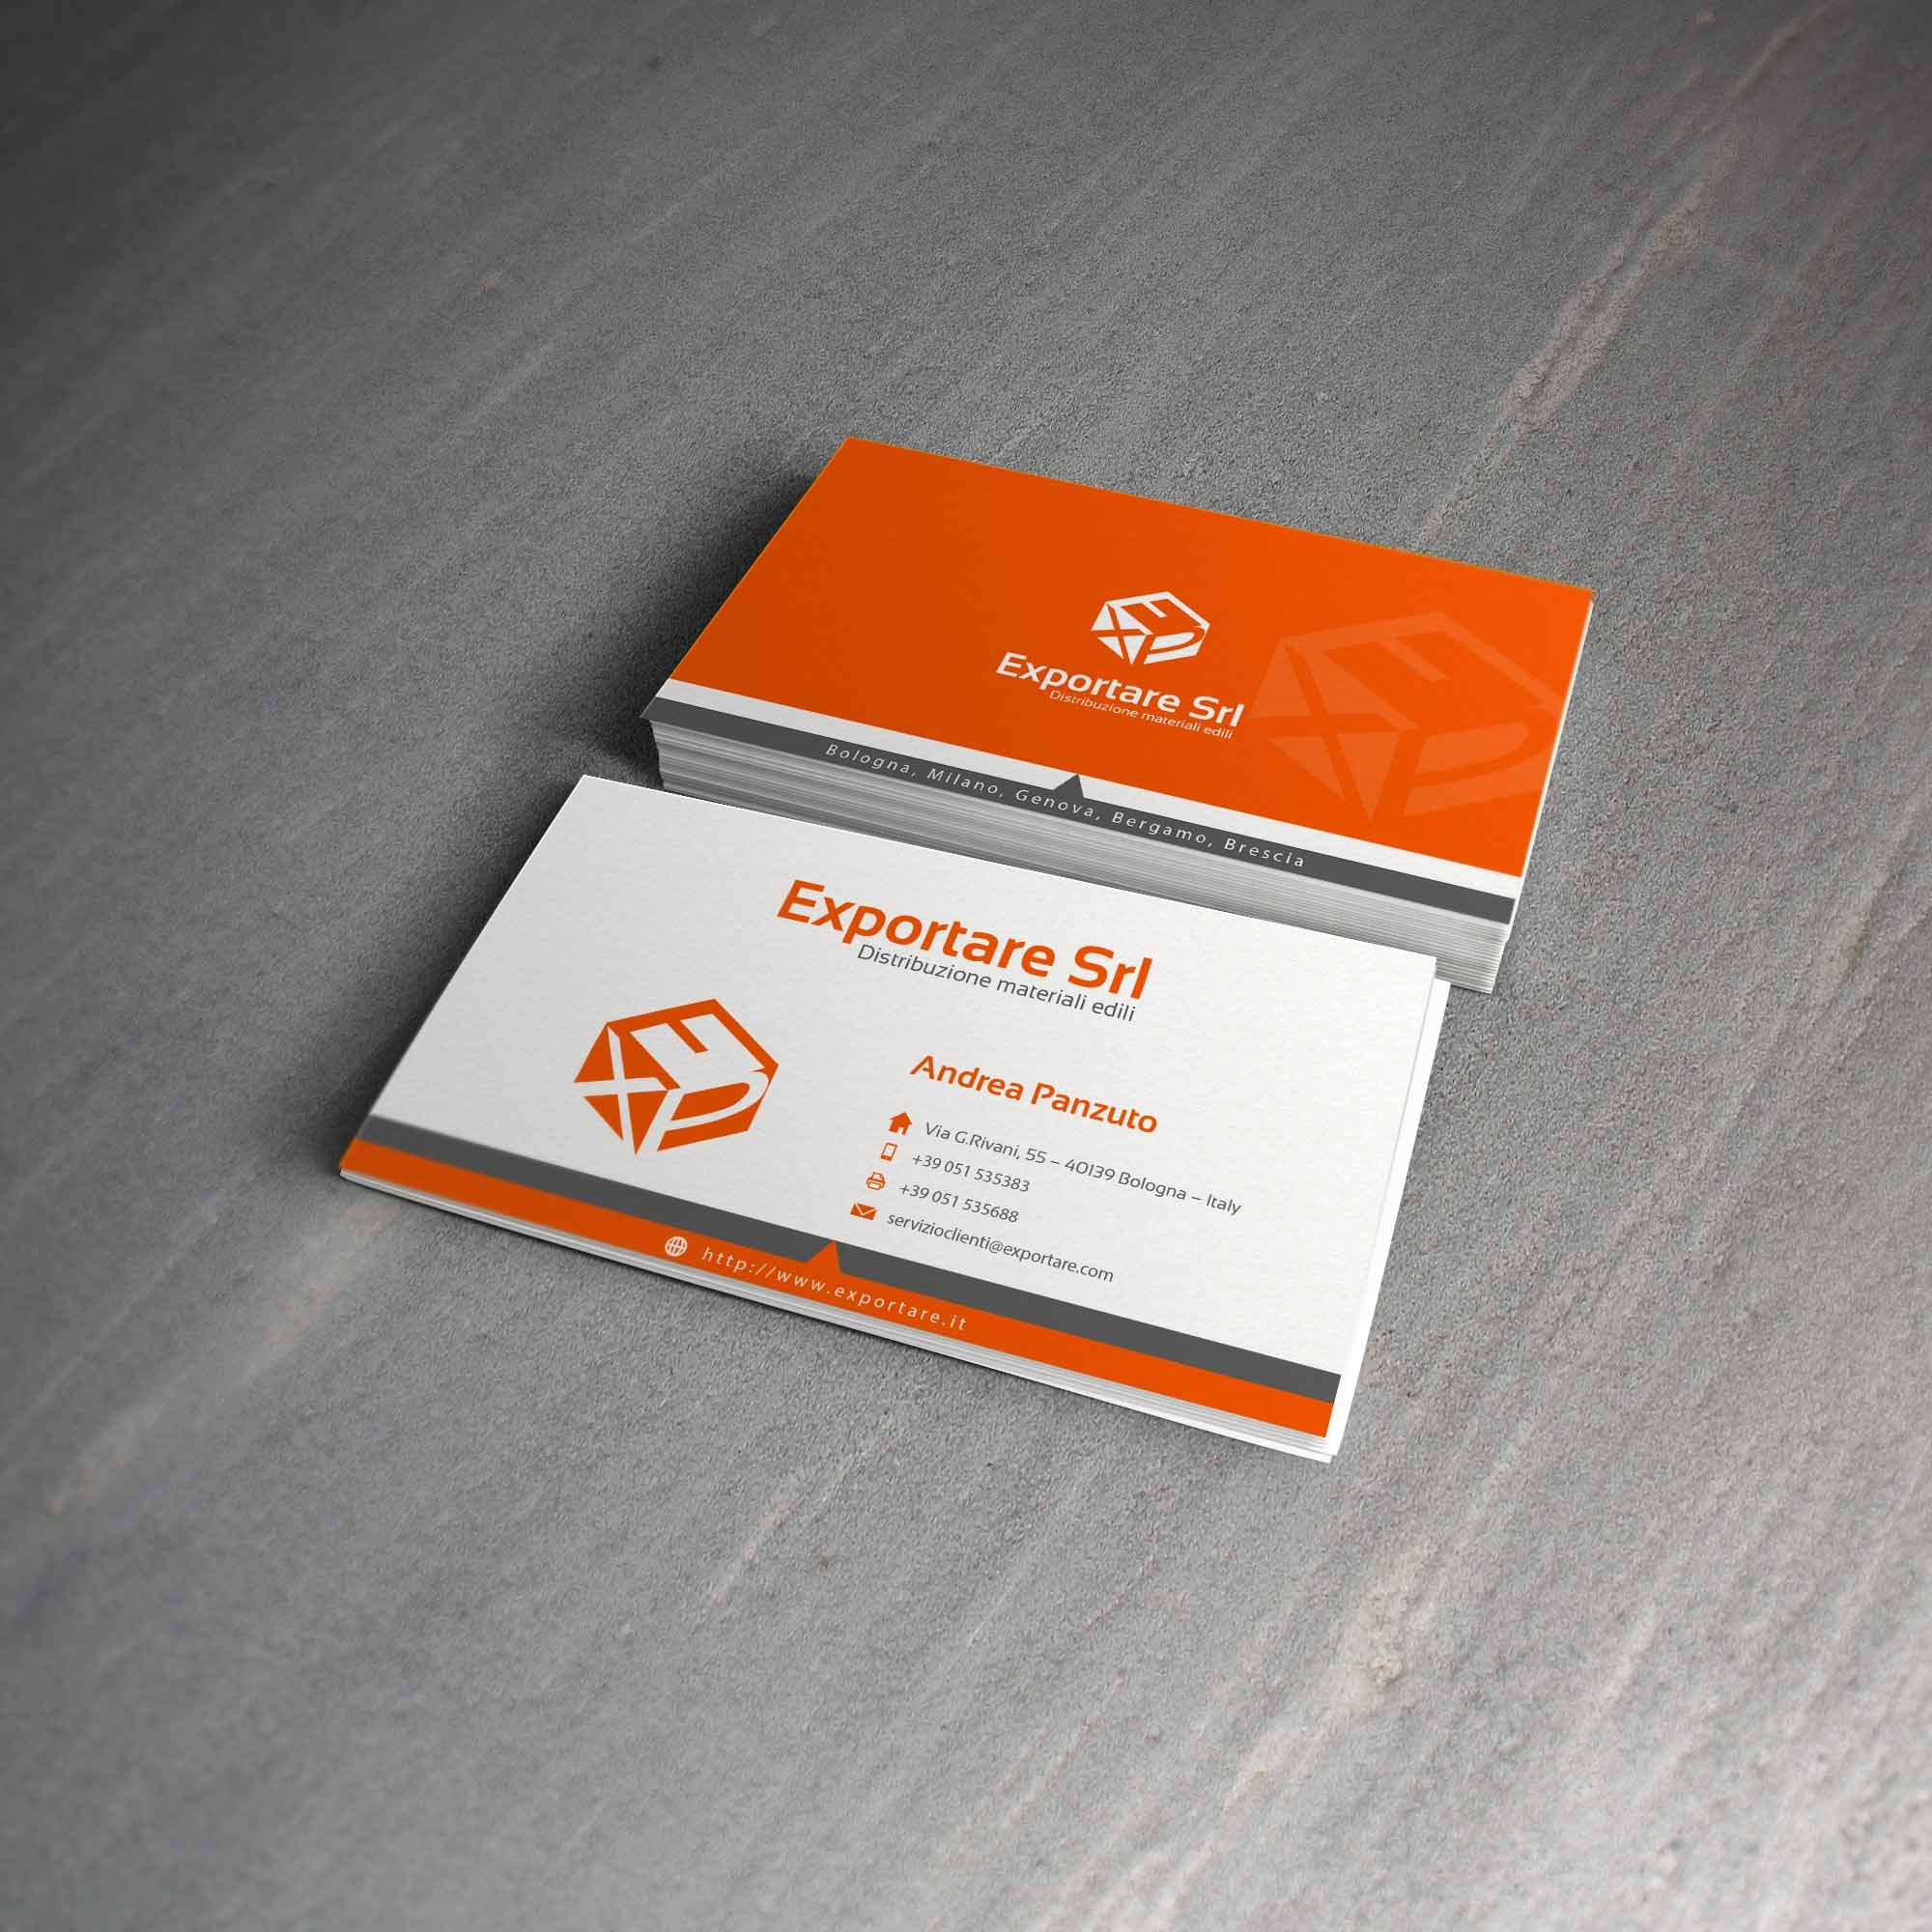 My Business card design sample | Professional Graphics Designer ...